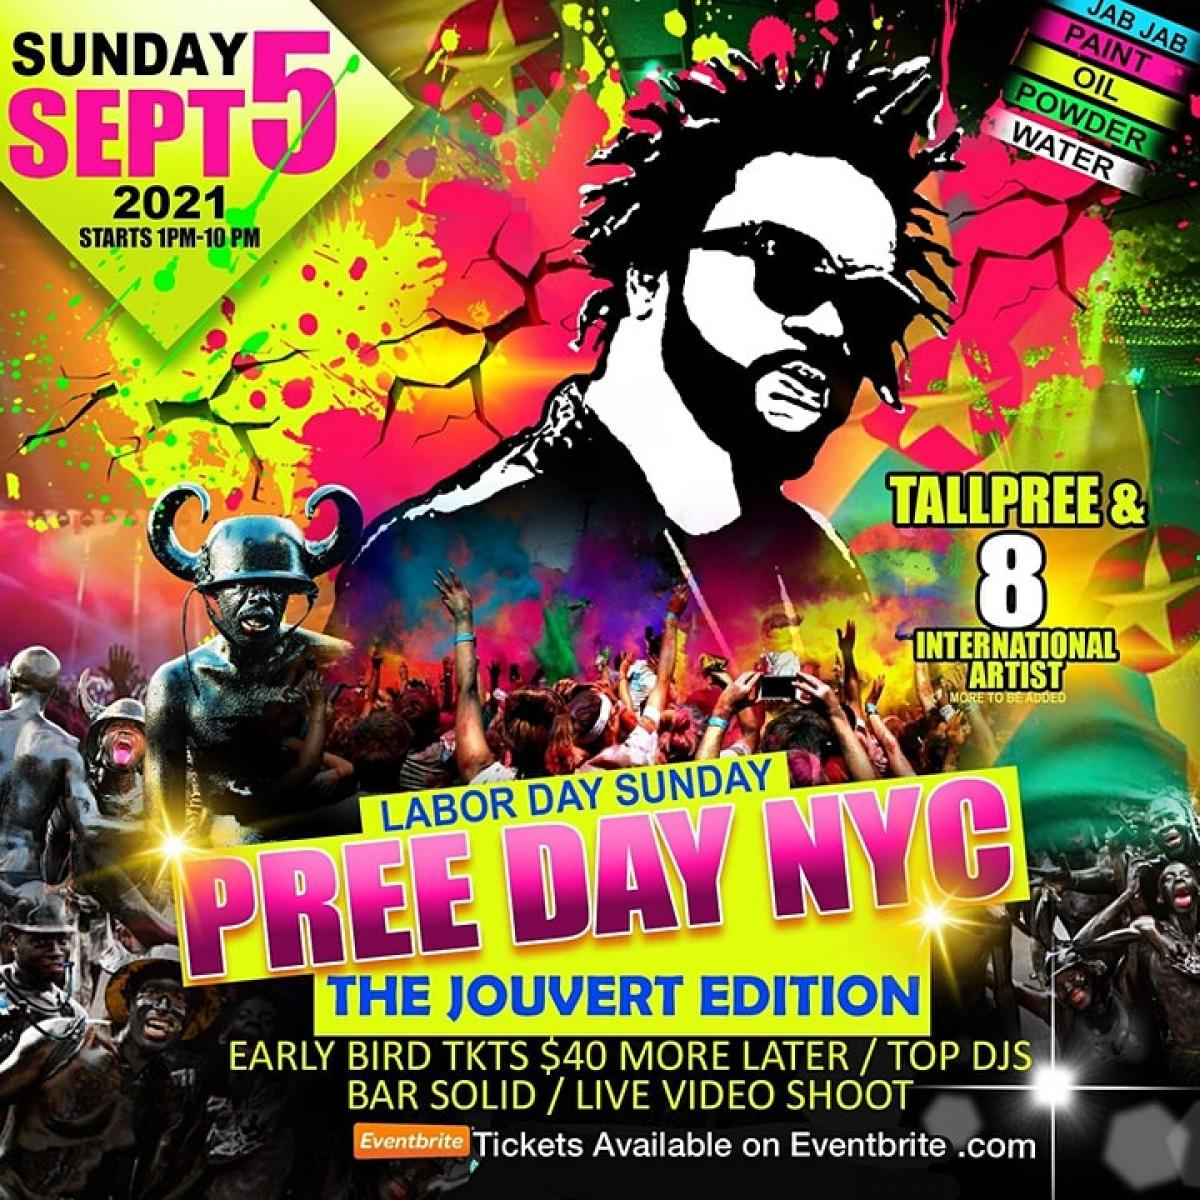 Preeday NYC- The Jouvert Edition flyer or graphic.